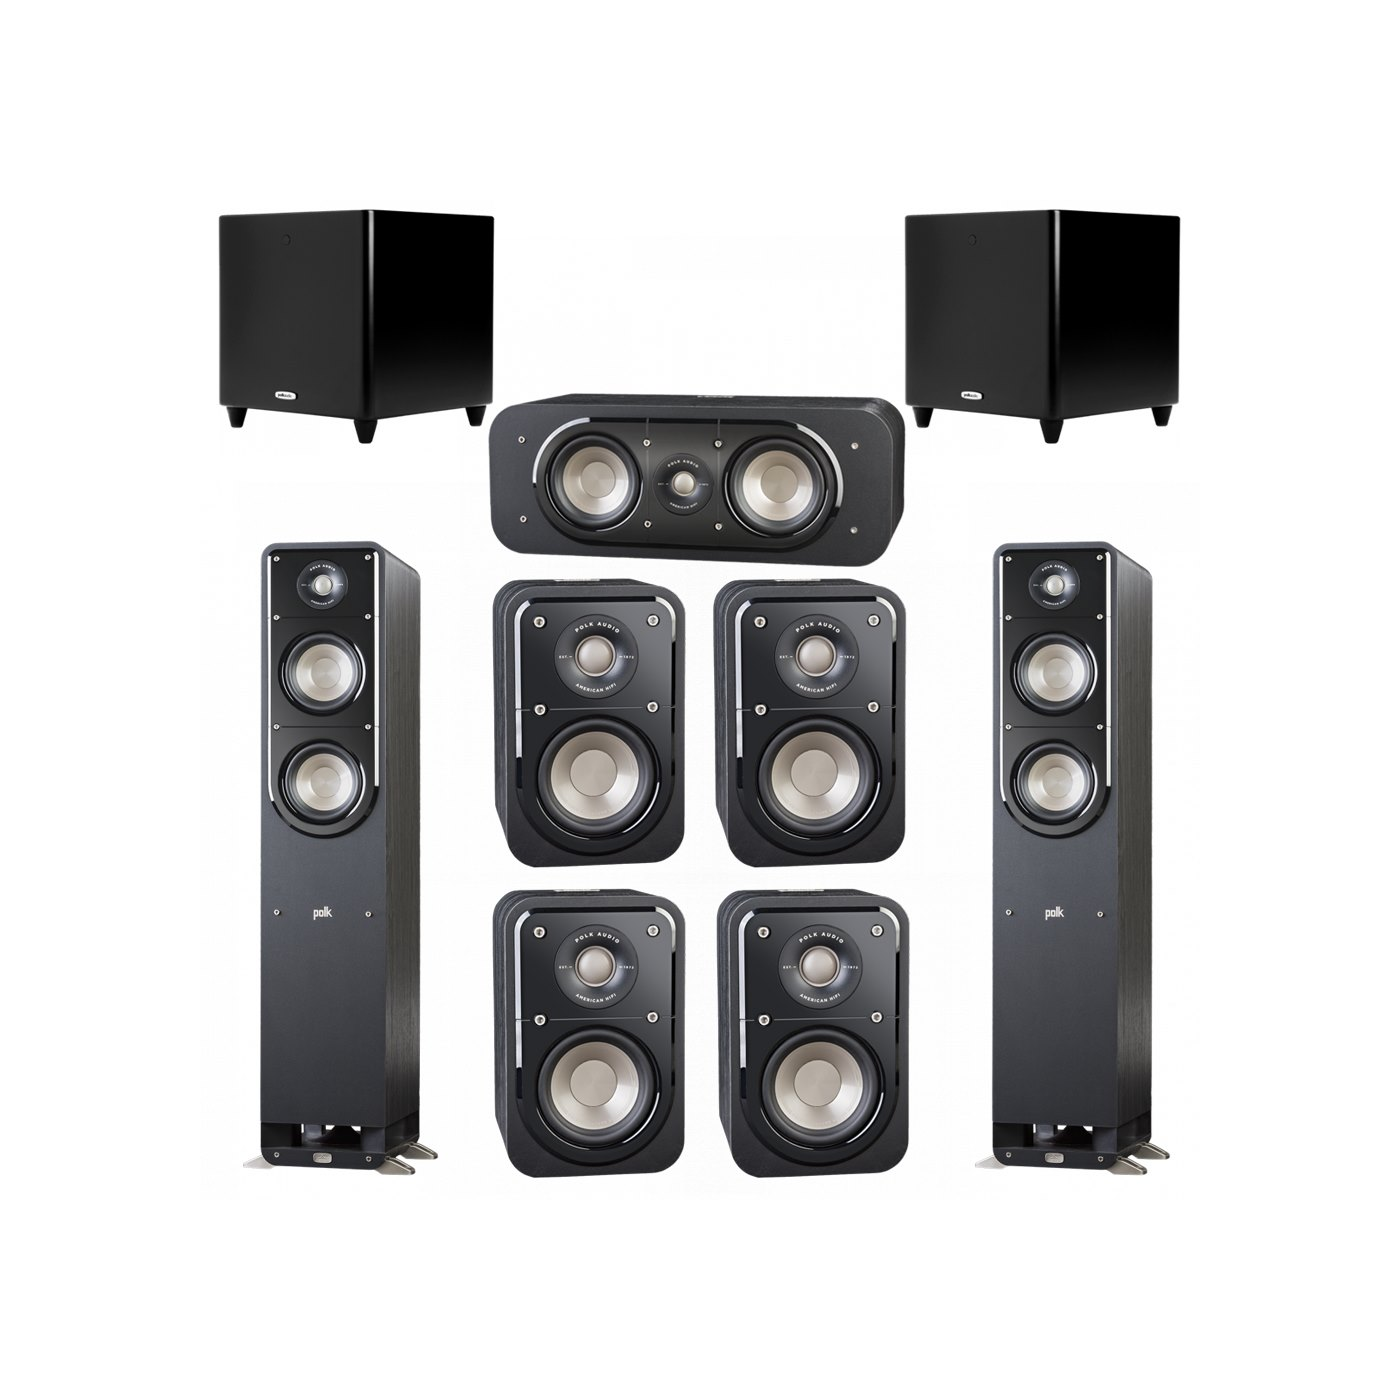 Polk Audio Signature 7.2 System with 2 S50 Tower Speaker, 1 Polk S30 Center Speaker, 4 Polk S10 Bookshelf Speaker, 2 Polk DSW PRO 550 wi Subwoofer